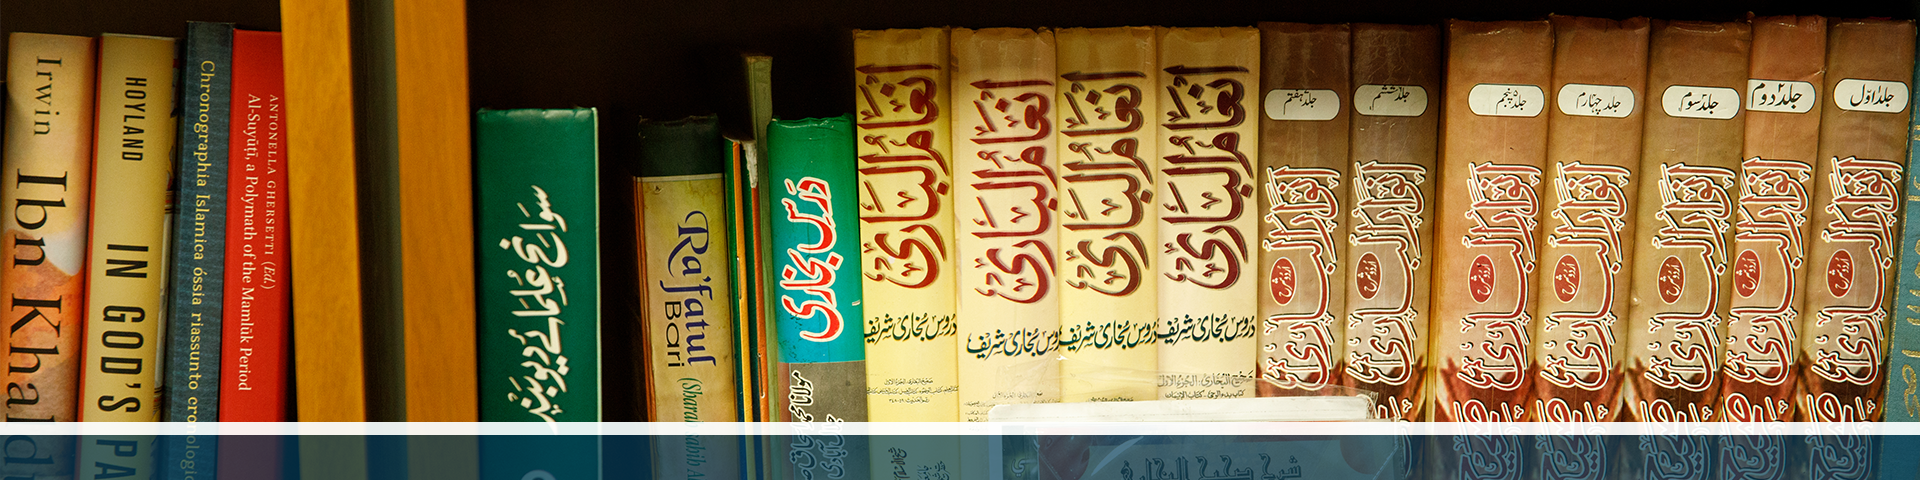 A shelf full of history books in English and Arabic.